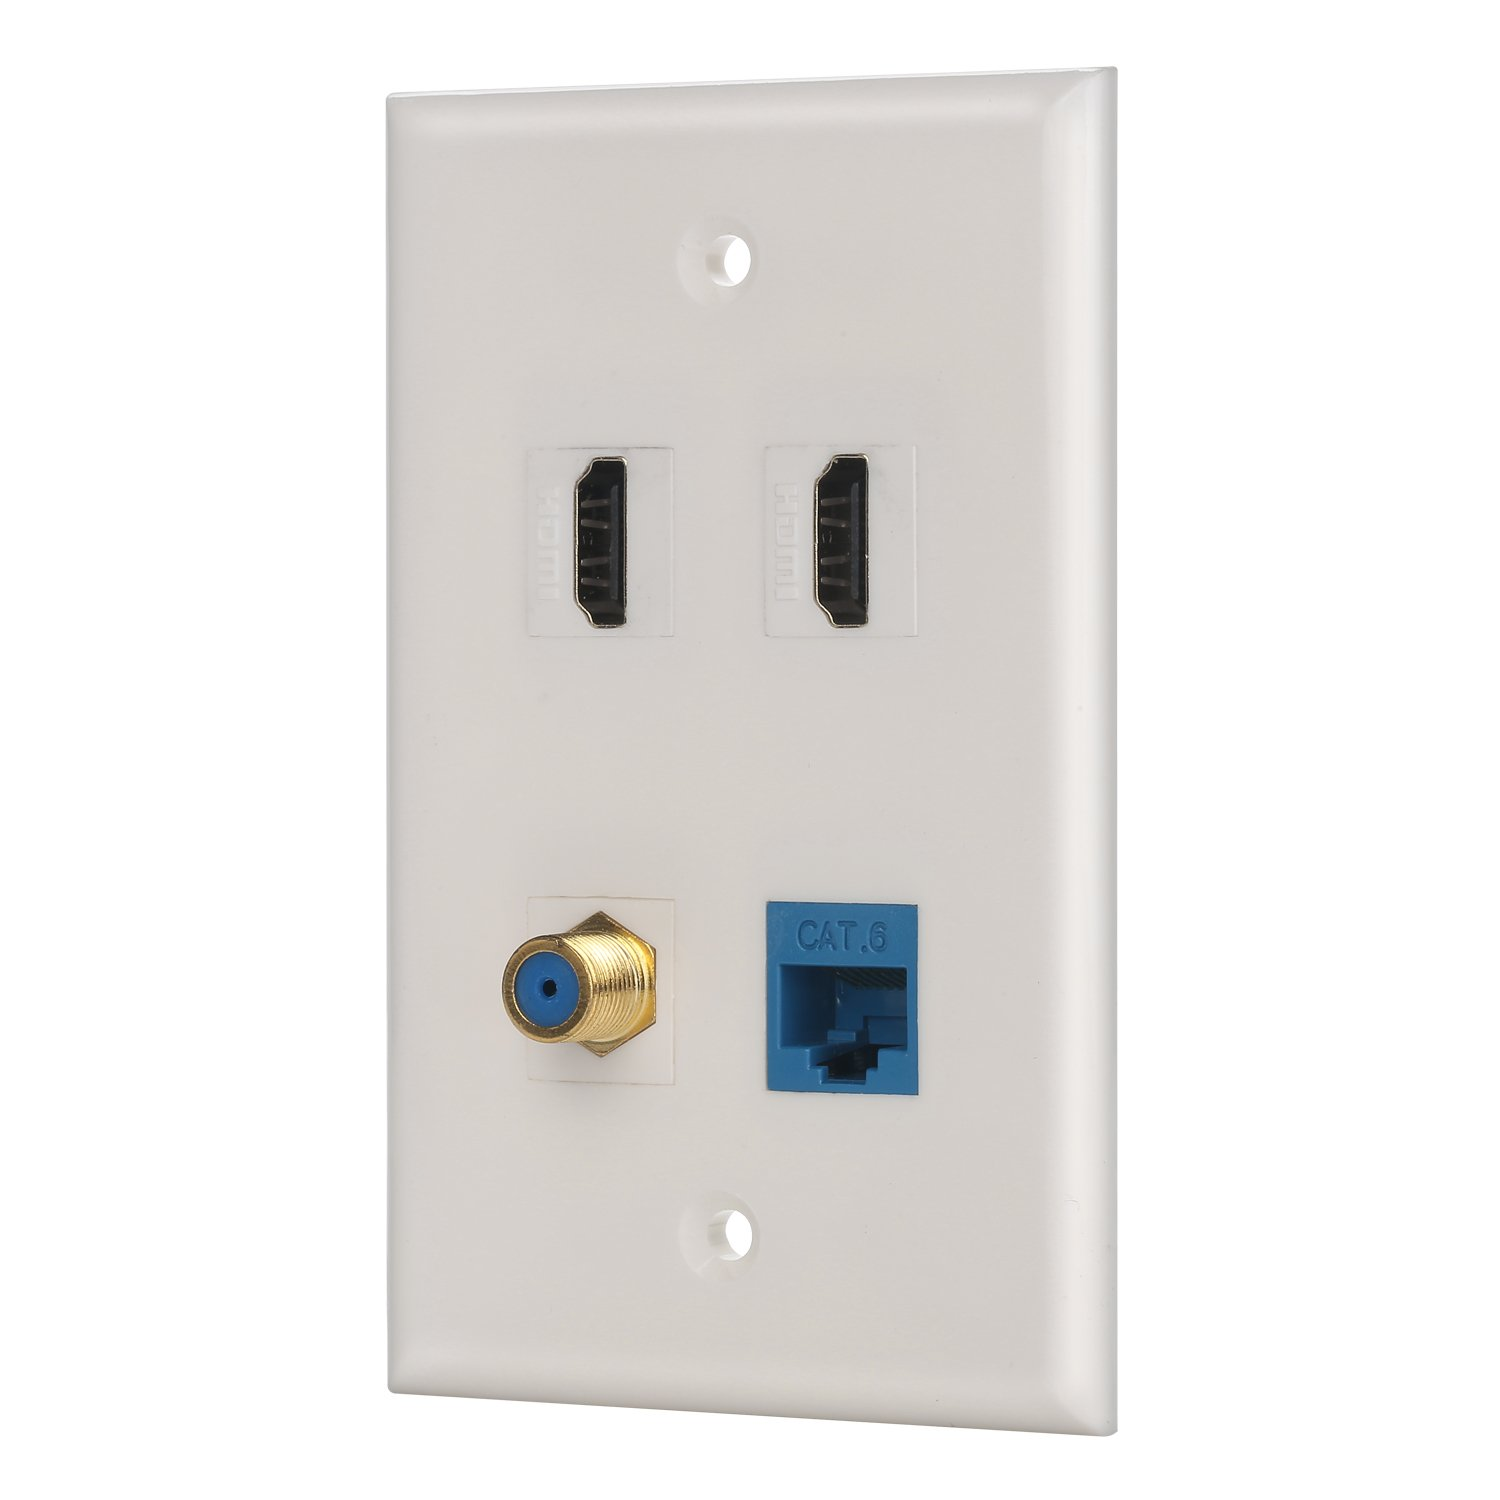 IBL-4 port Wall Plate with Coaxial TV Cable F type + Cat6 Ethernet +2 HDMI Keystone Female to Female Jack in White